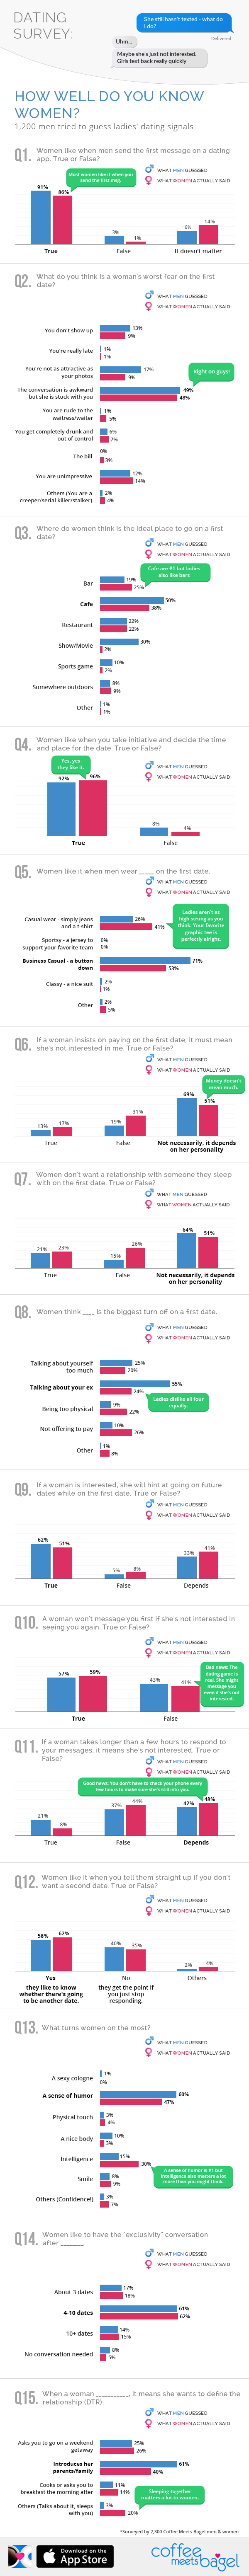 Online Dating Statistics For Him